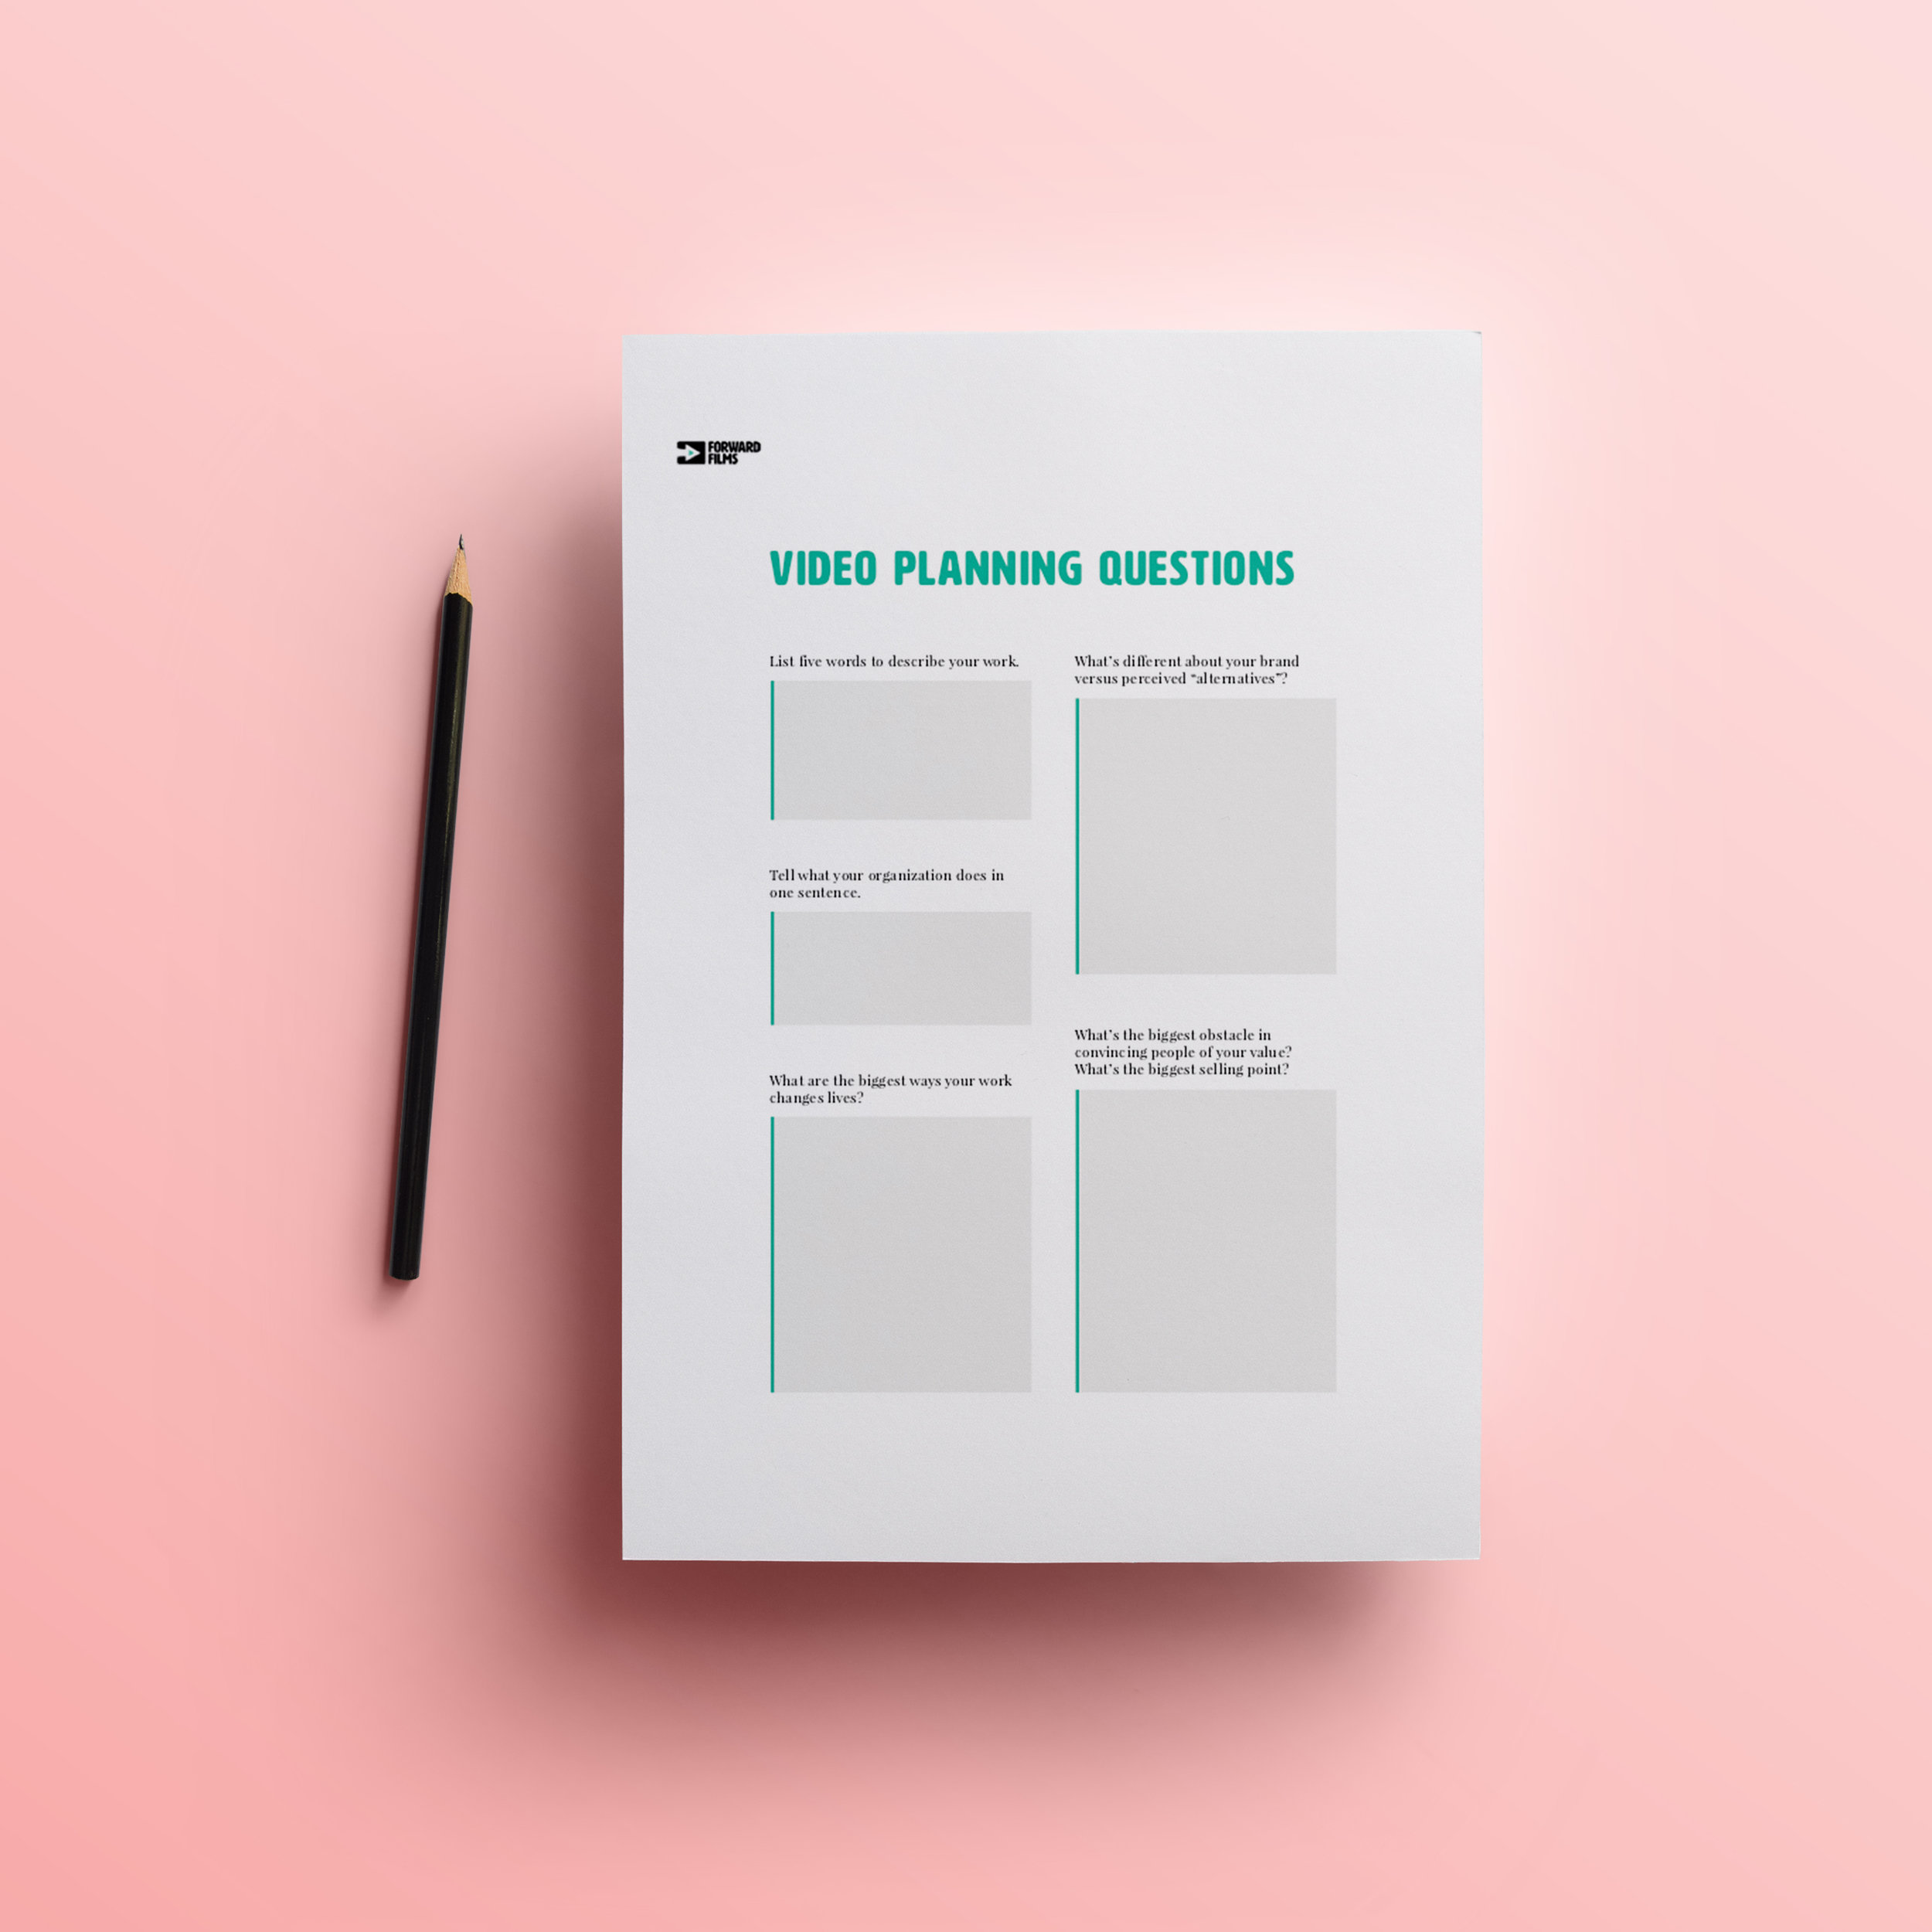 Video planning questions mockup coral pencil.jpg